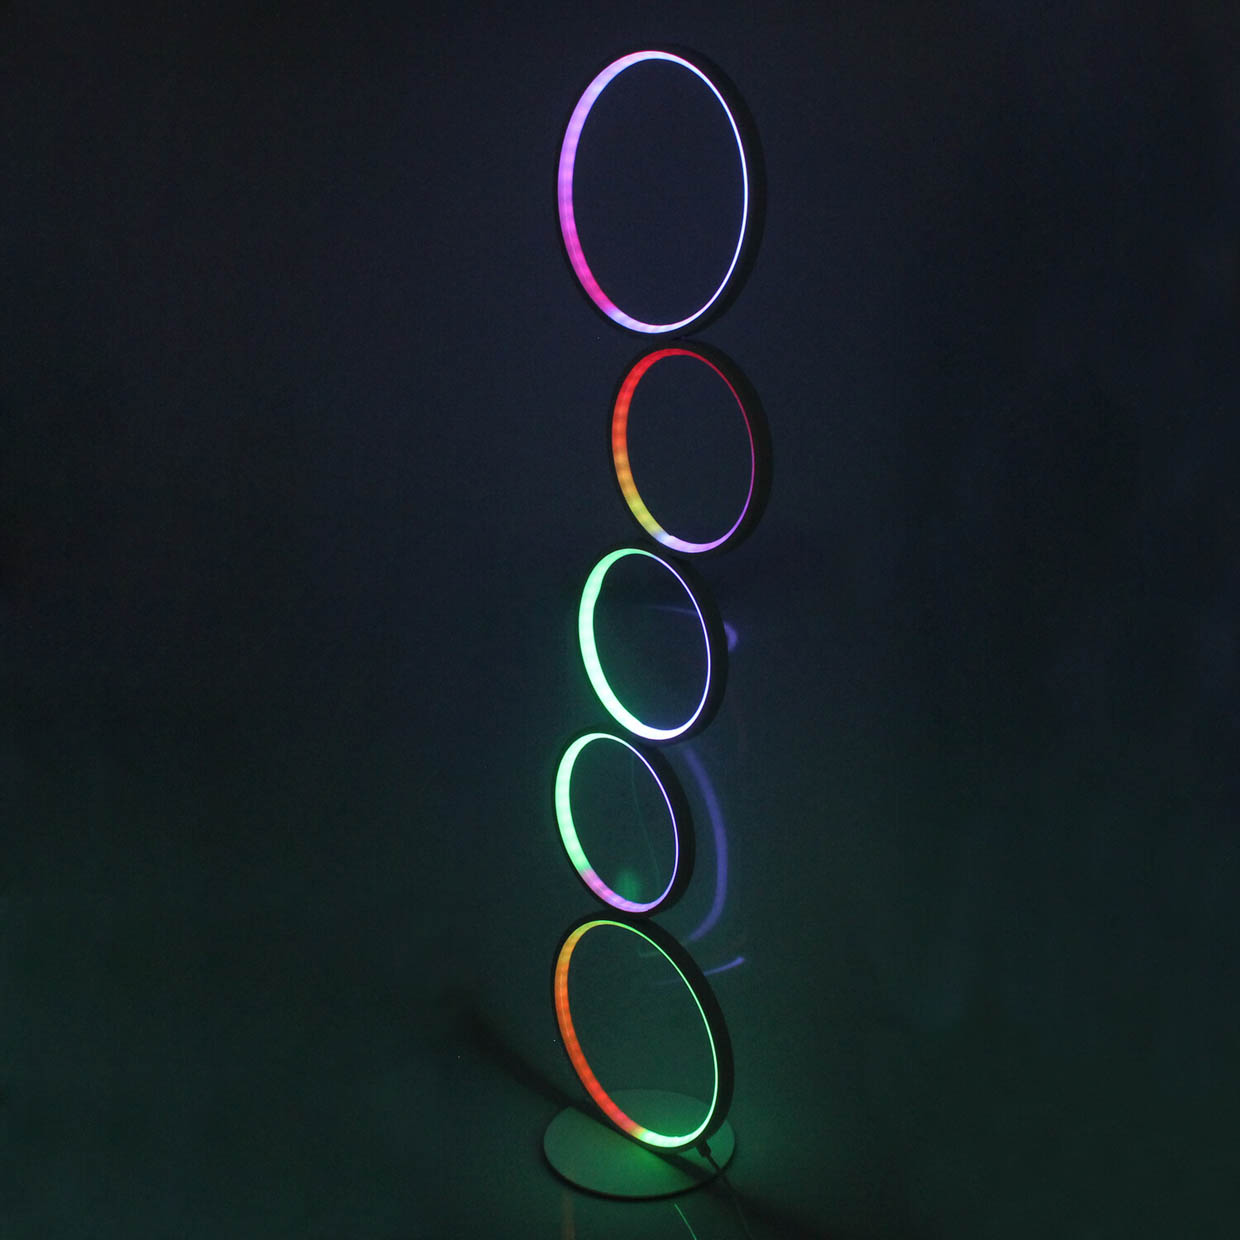 Stacked Rings RGB LED Floor Lamp